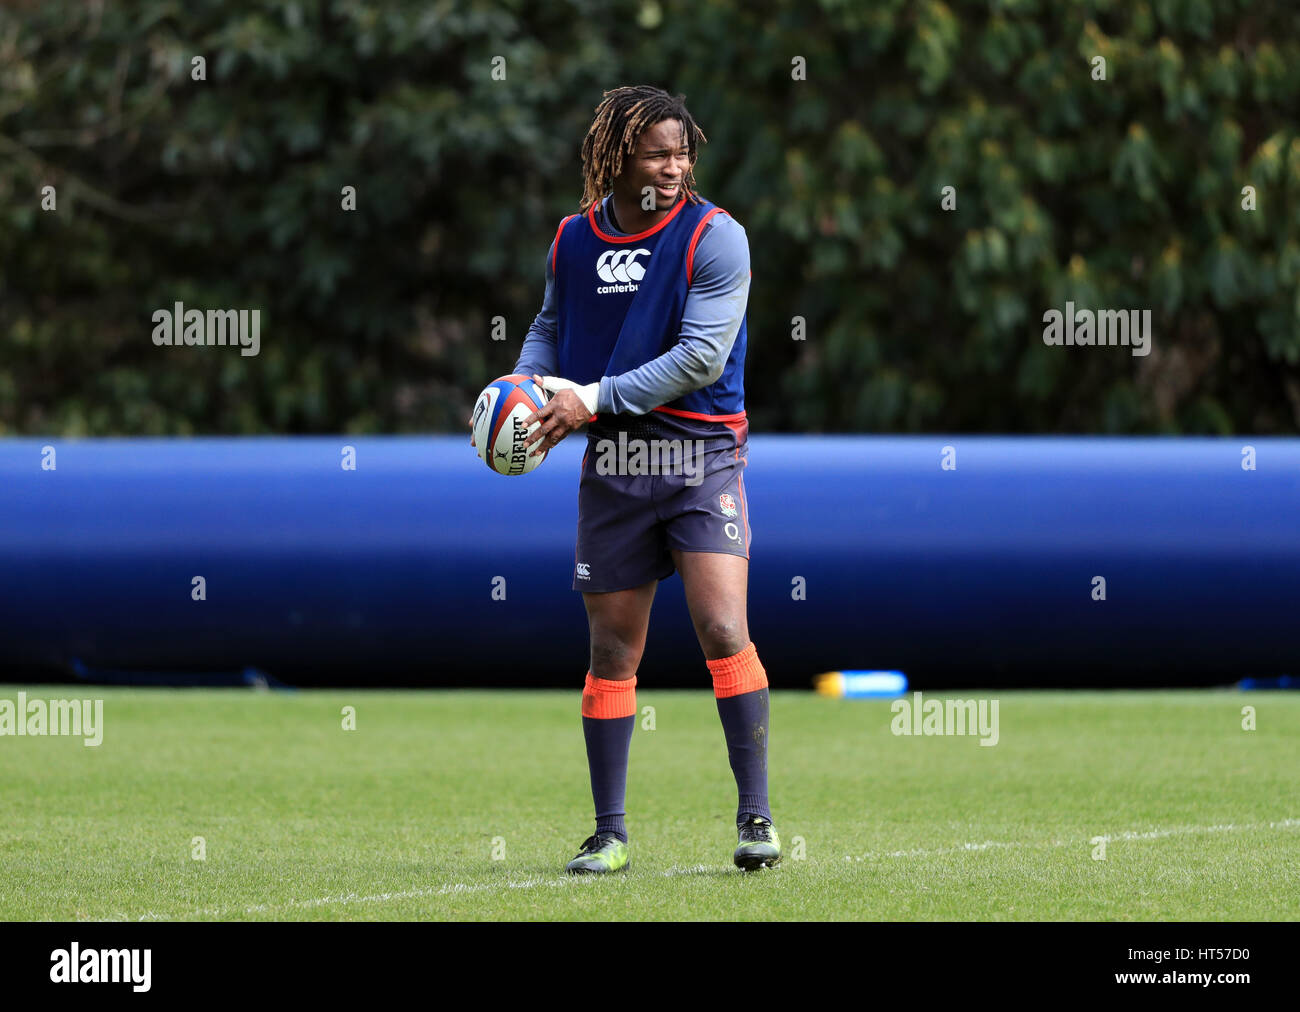 England's Marland Yarde during the training session at Pennyhill Park, Bagshot. - Stock Image